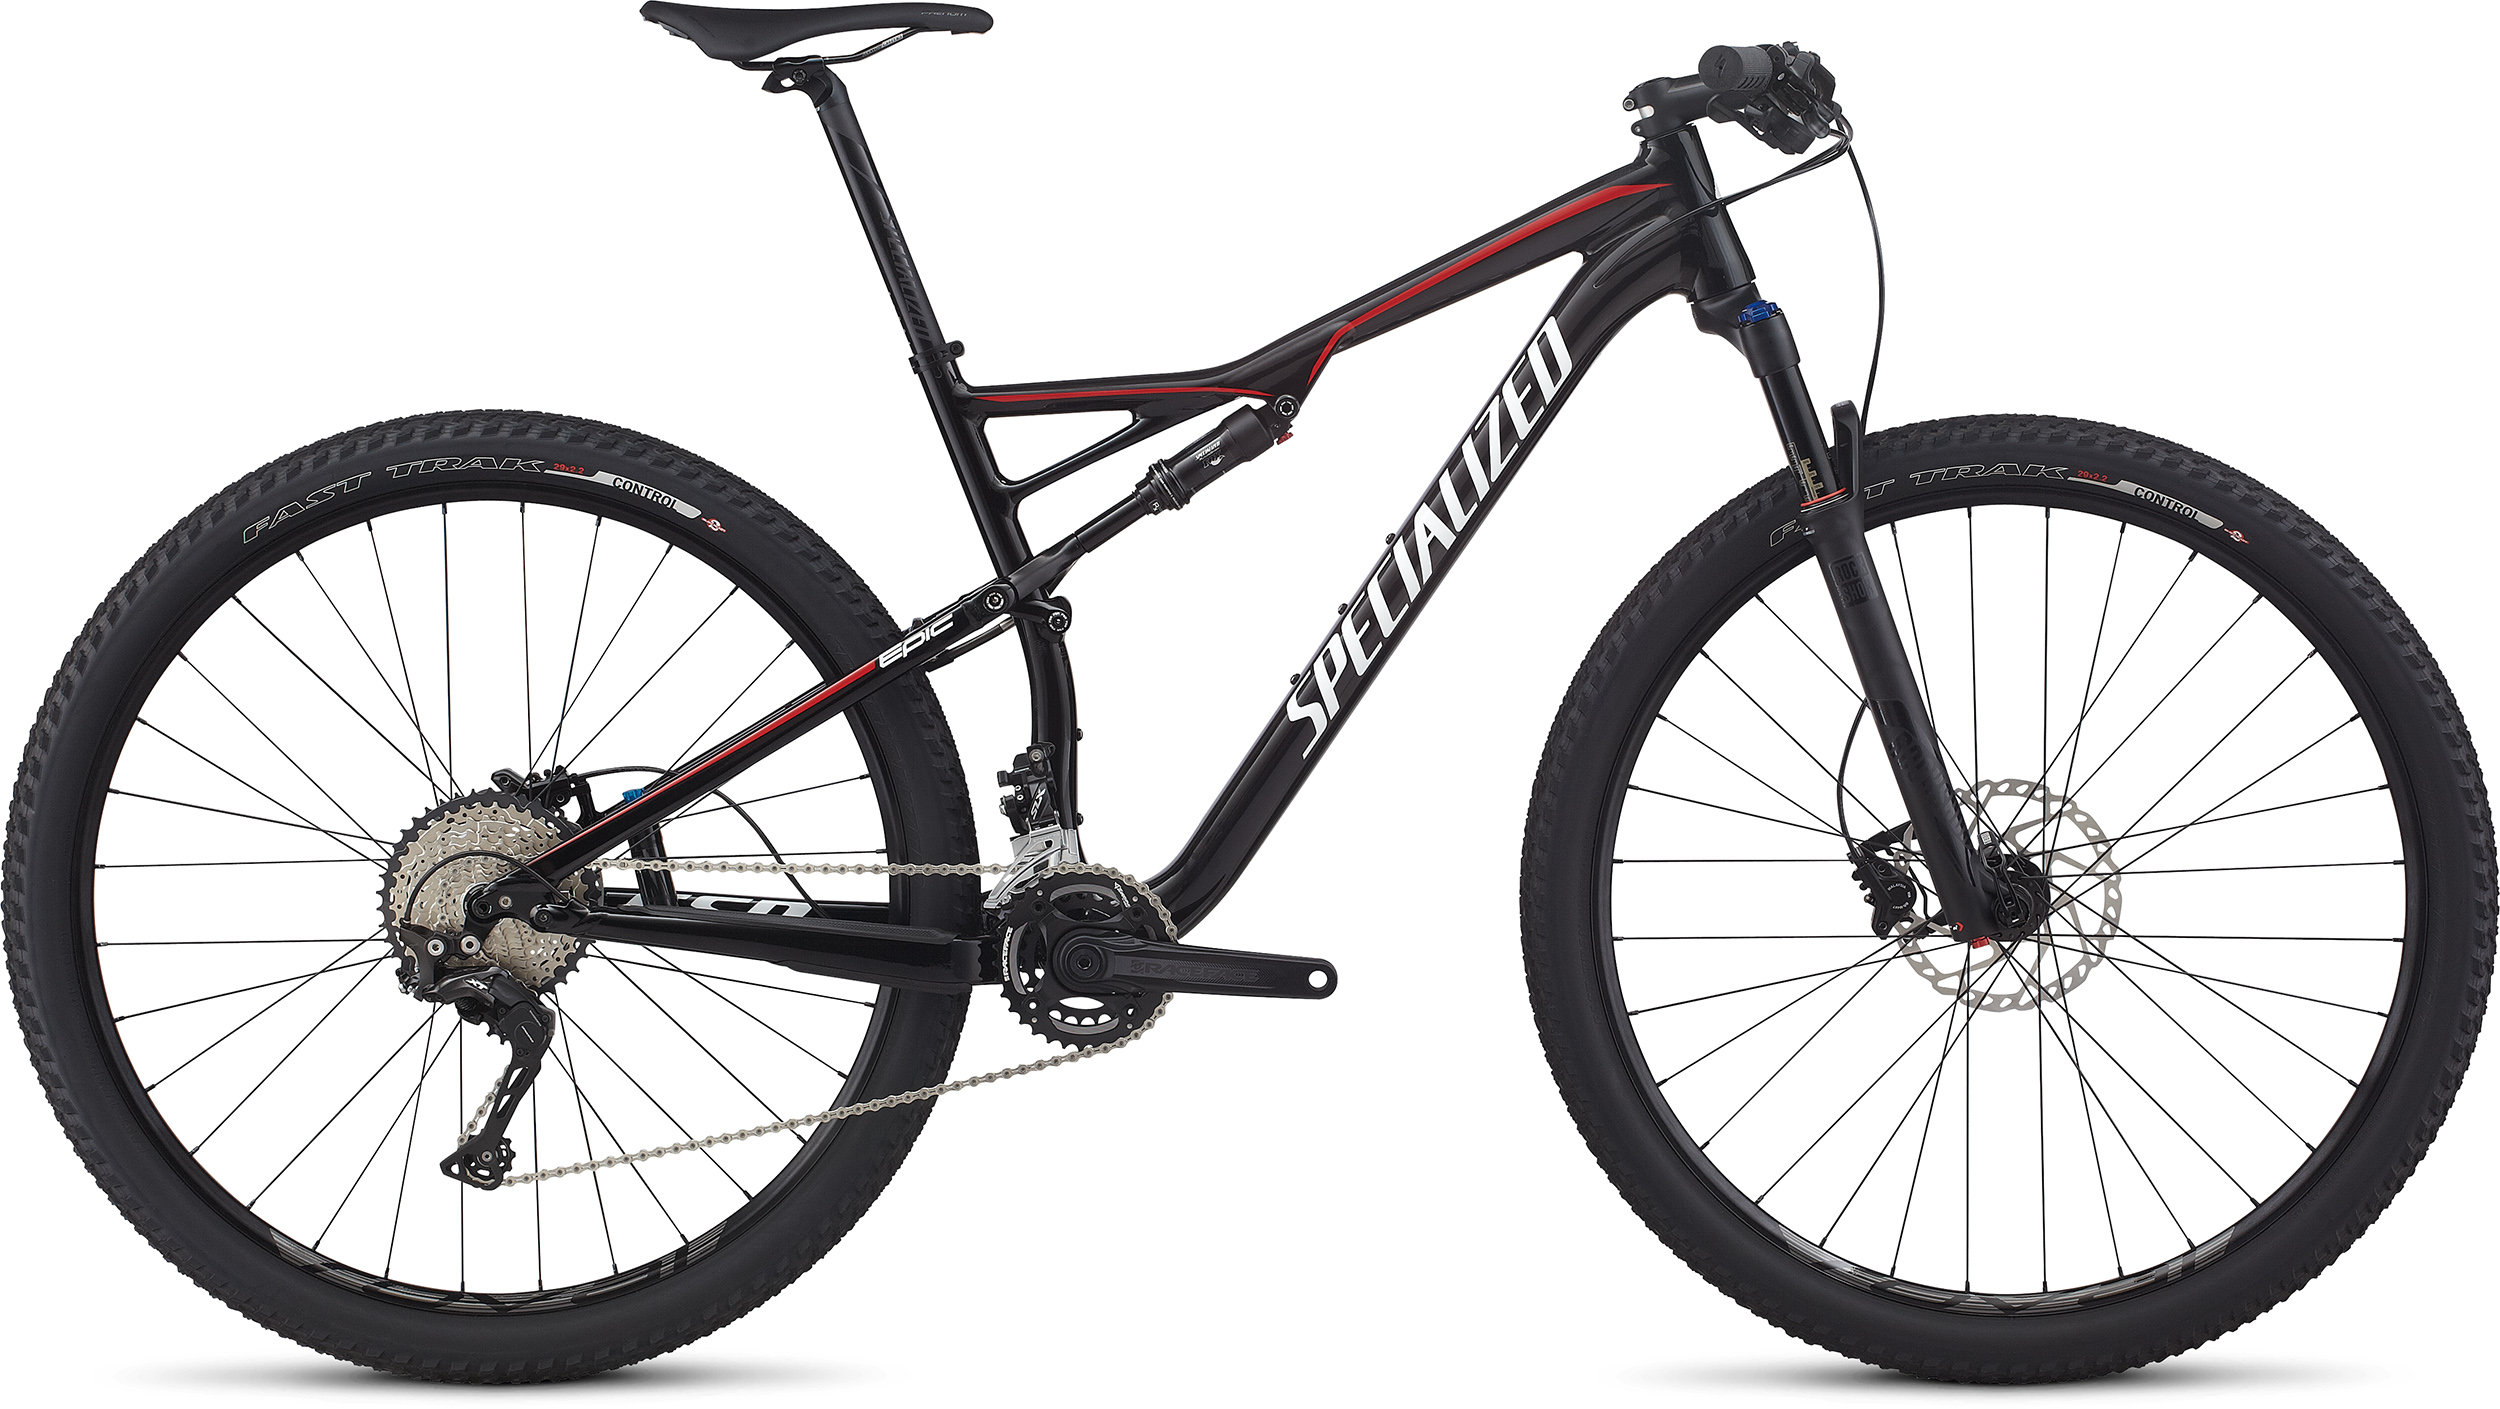 SPECIALIZED EPIC FSR COMP 29 BLK/WHT/FLORED M - SPECIALIZED EPIC FSR COMP 29 BLK/WHT/FLORED M